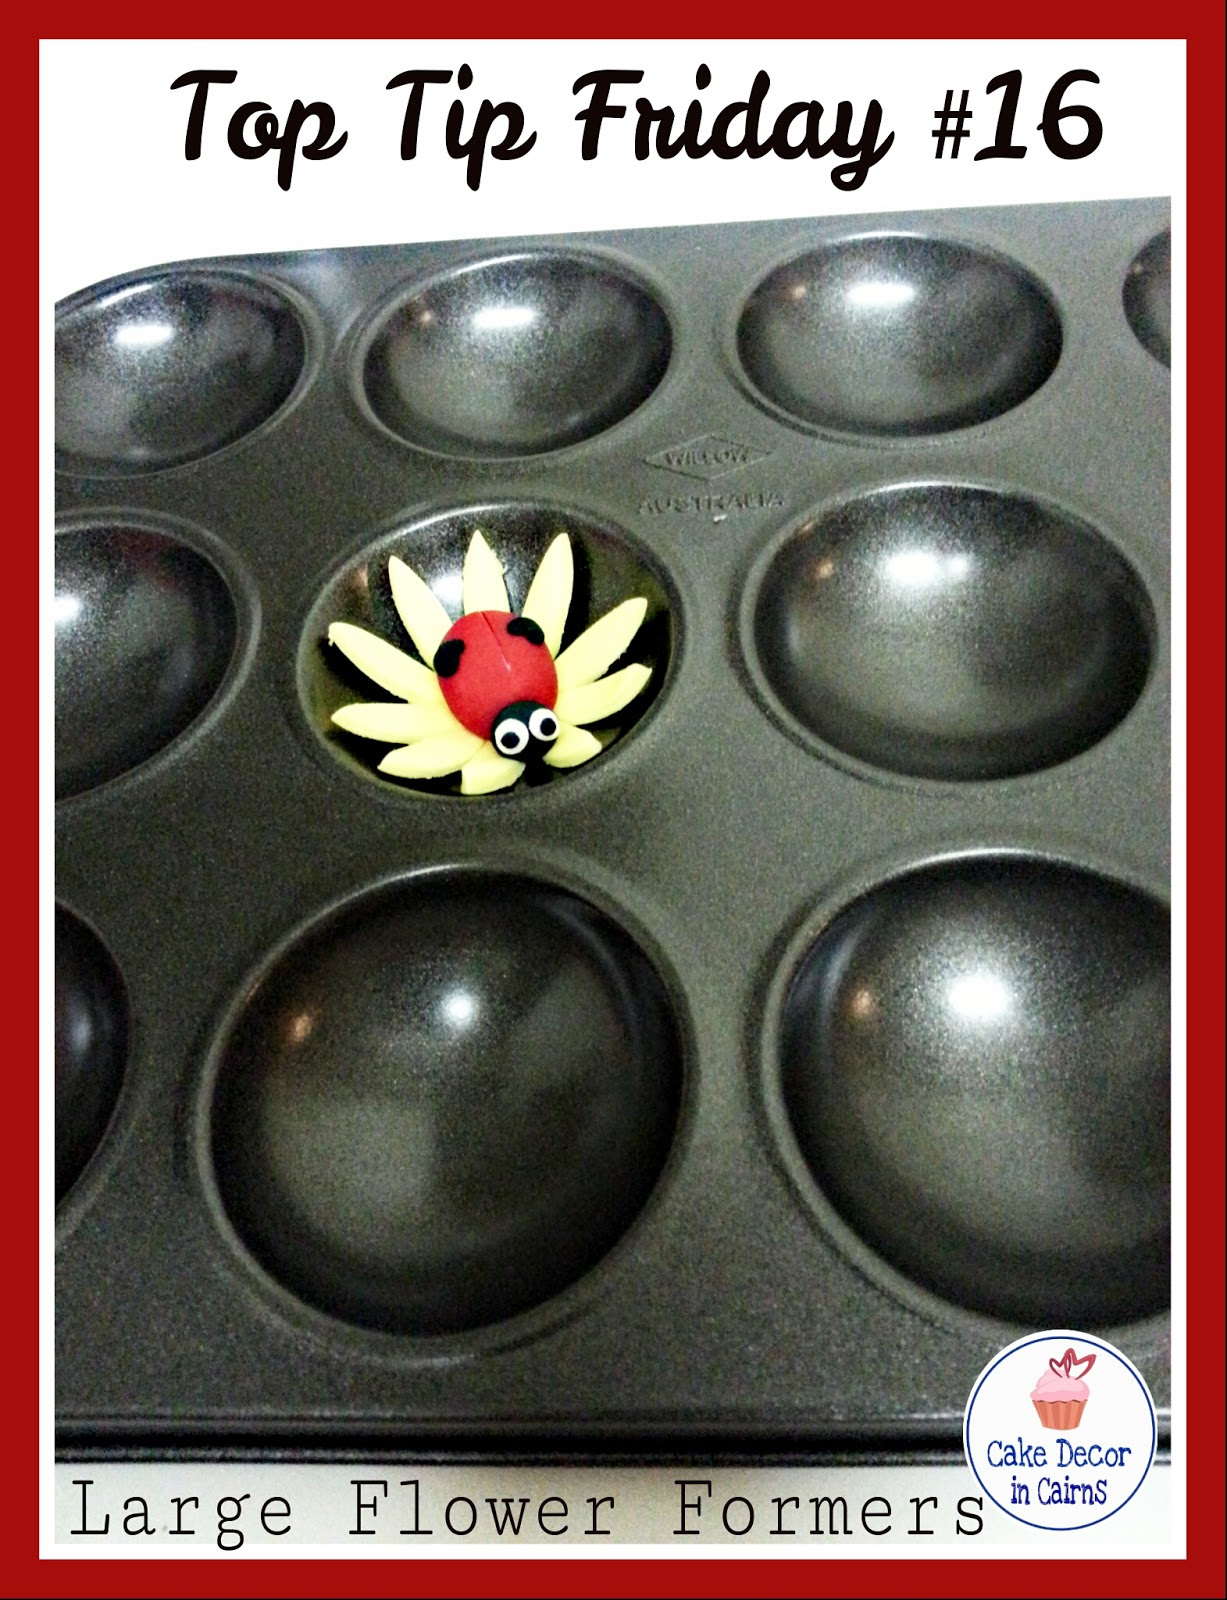 Using baking Trays as flower formers Cake Decor in Cairns Yellow Flower red lady bug Fondant